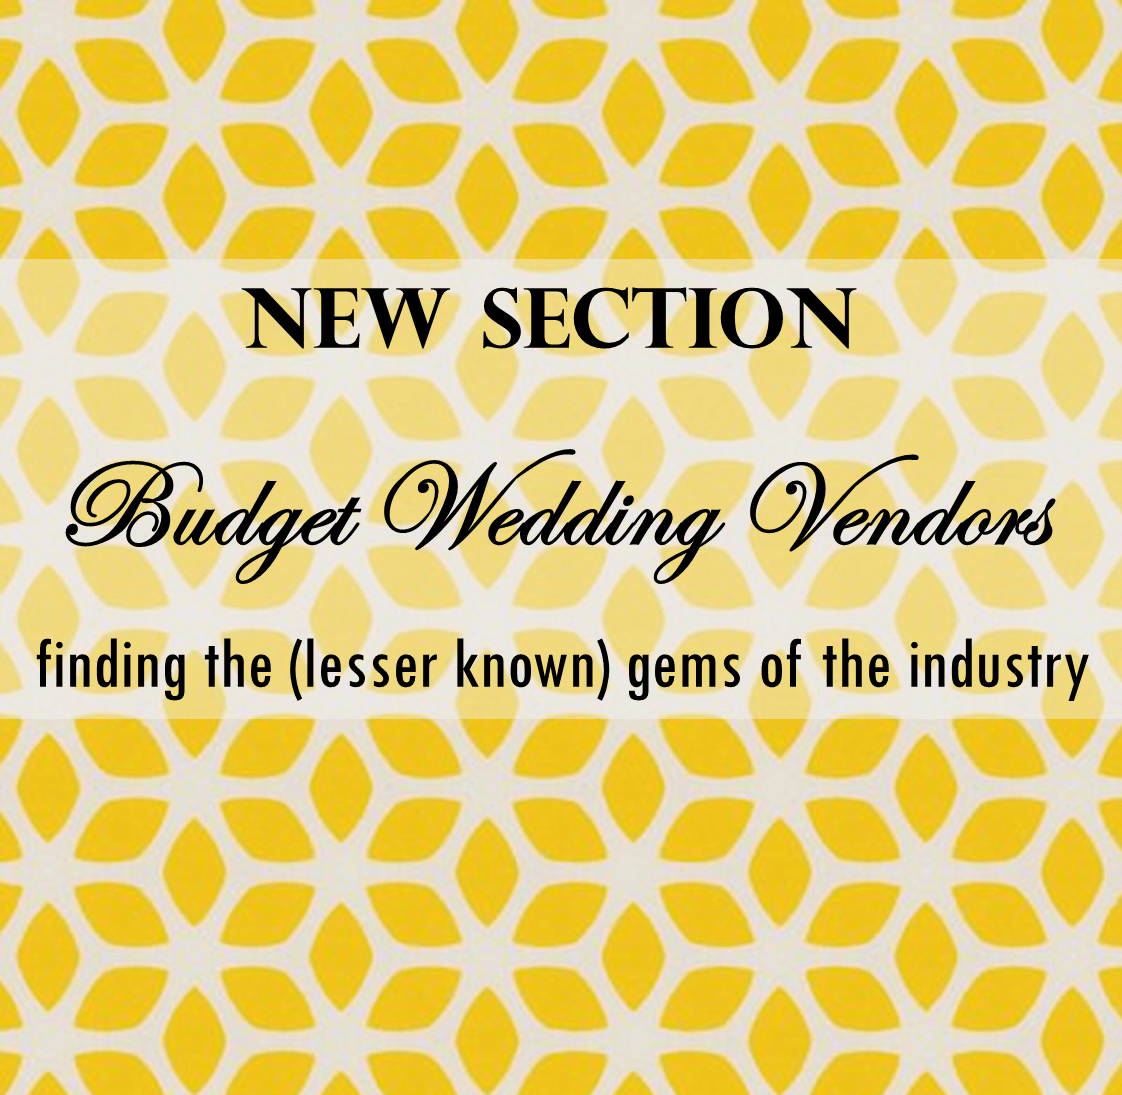 Budget Wedding Vendors